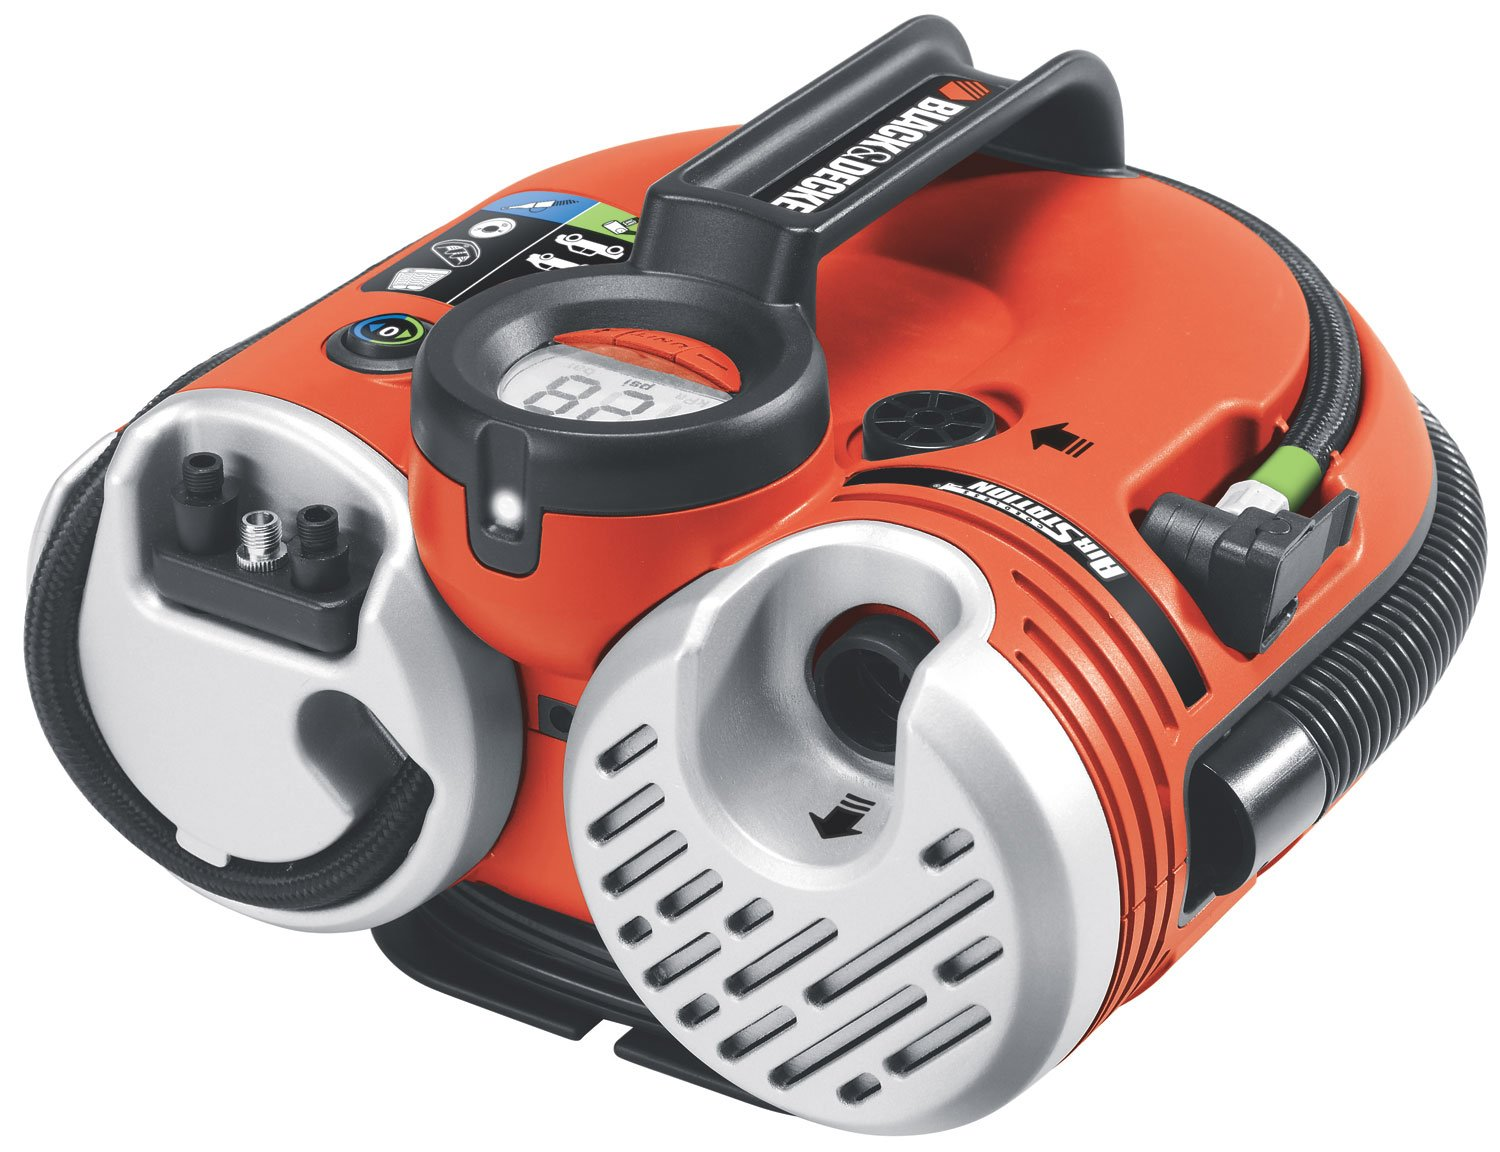 10. The Black and Decker ASI500 rechargeable air compressor and Cordless Air Station